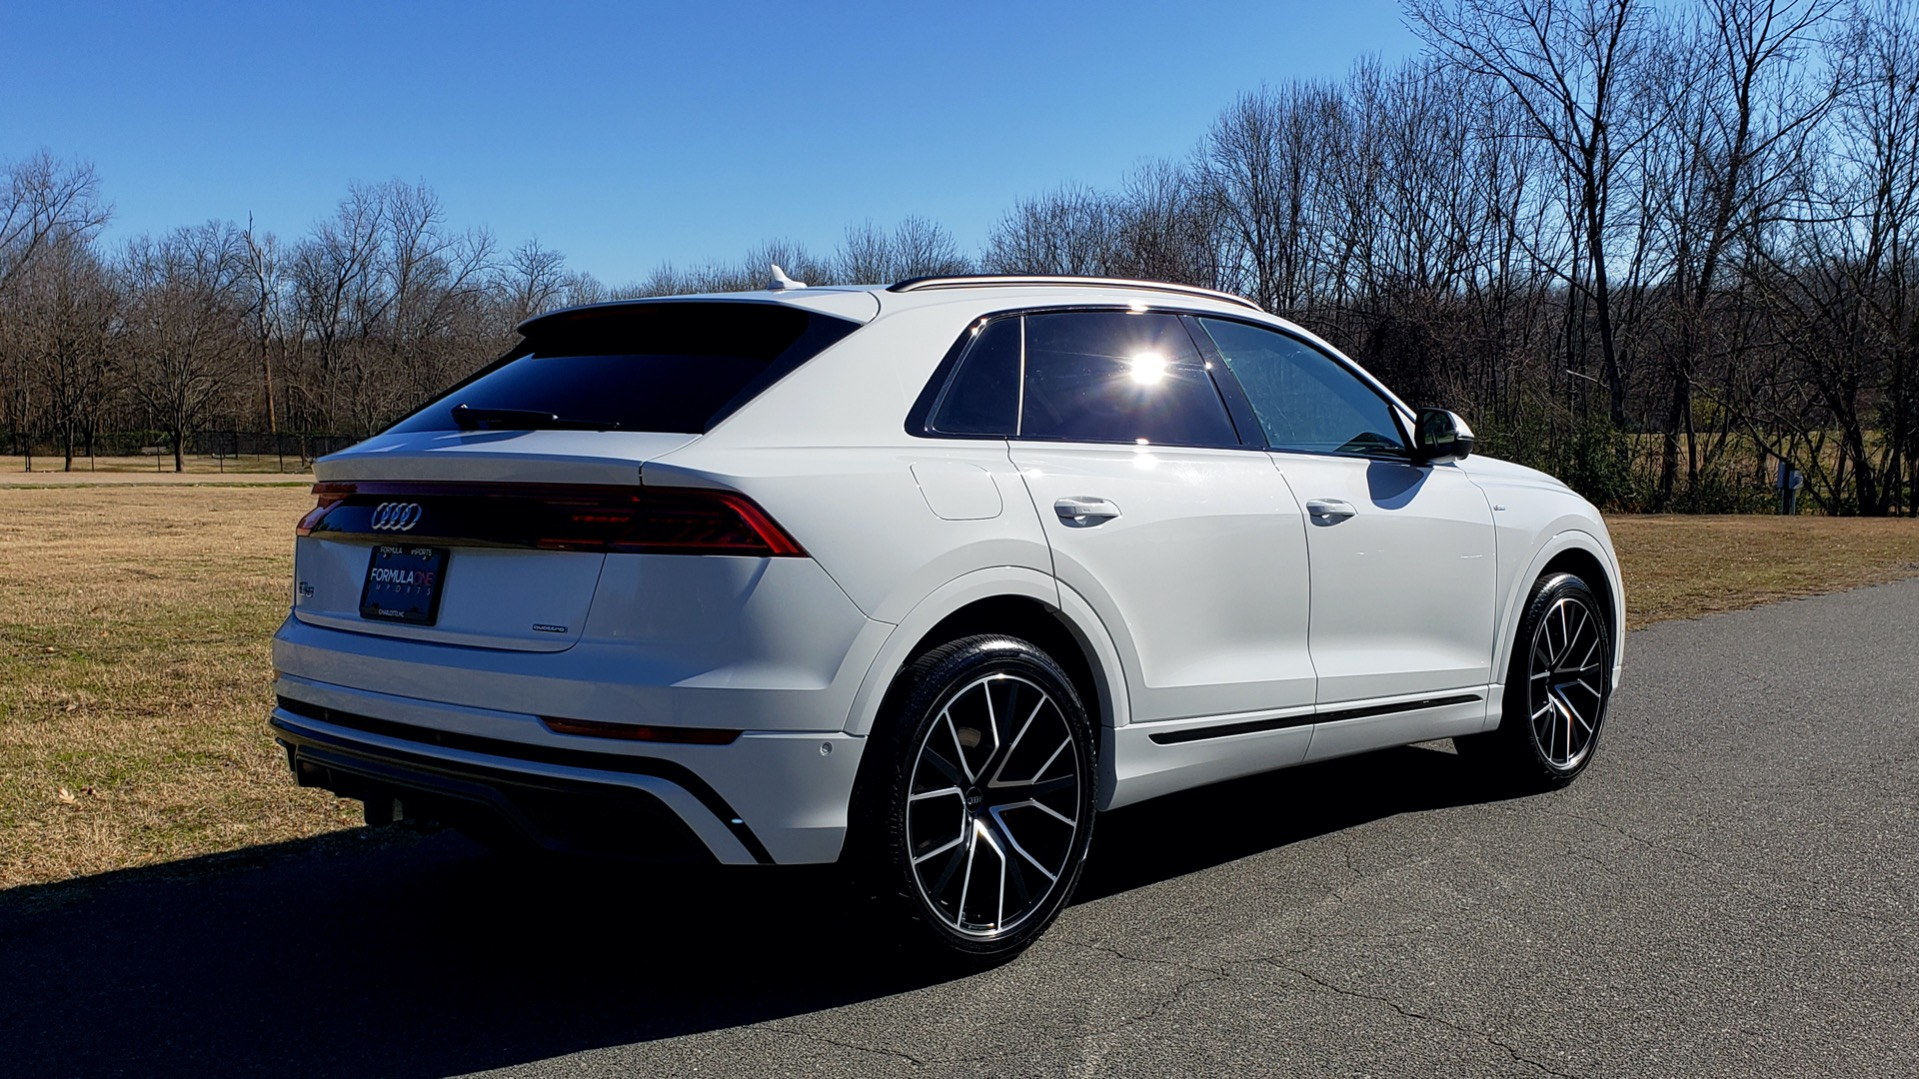 Used 2019 Audi Q8 PRESTIGE S-LINE / LUX PKG / ADAPT CHASSIS / YEAR ONE / CLD WTHR for sale Sold at Formula Imports in Charlotte NC 28227 11